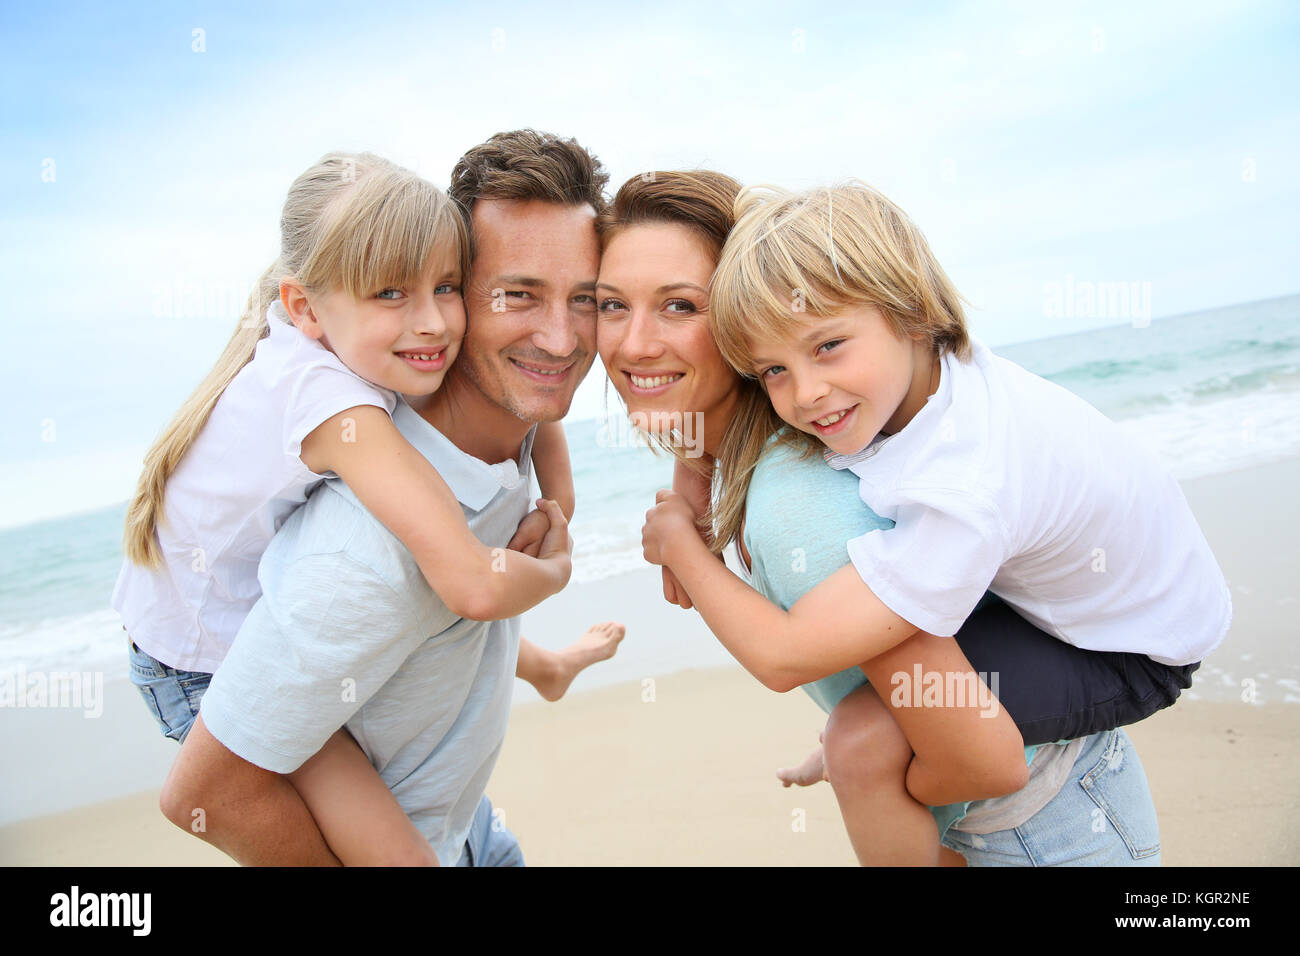 Parents giving piggyback ride to kids at the beach - Stock Image